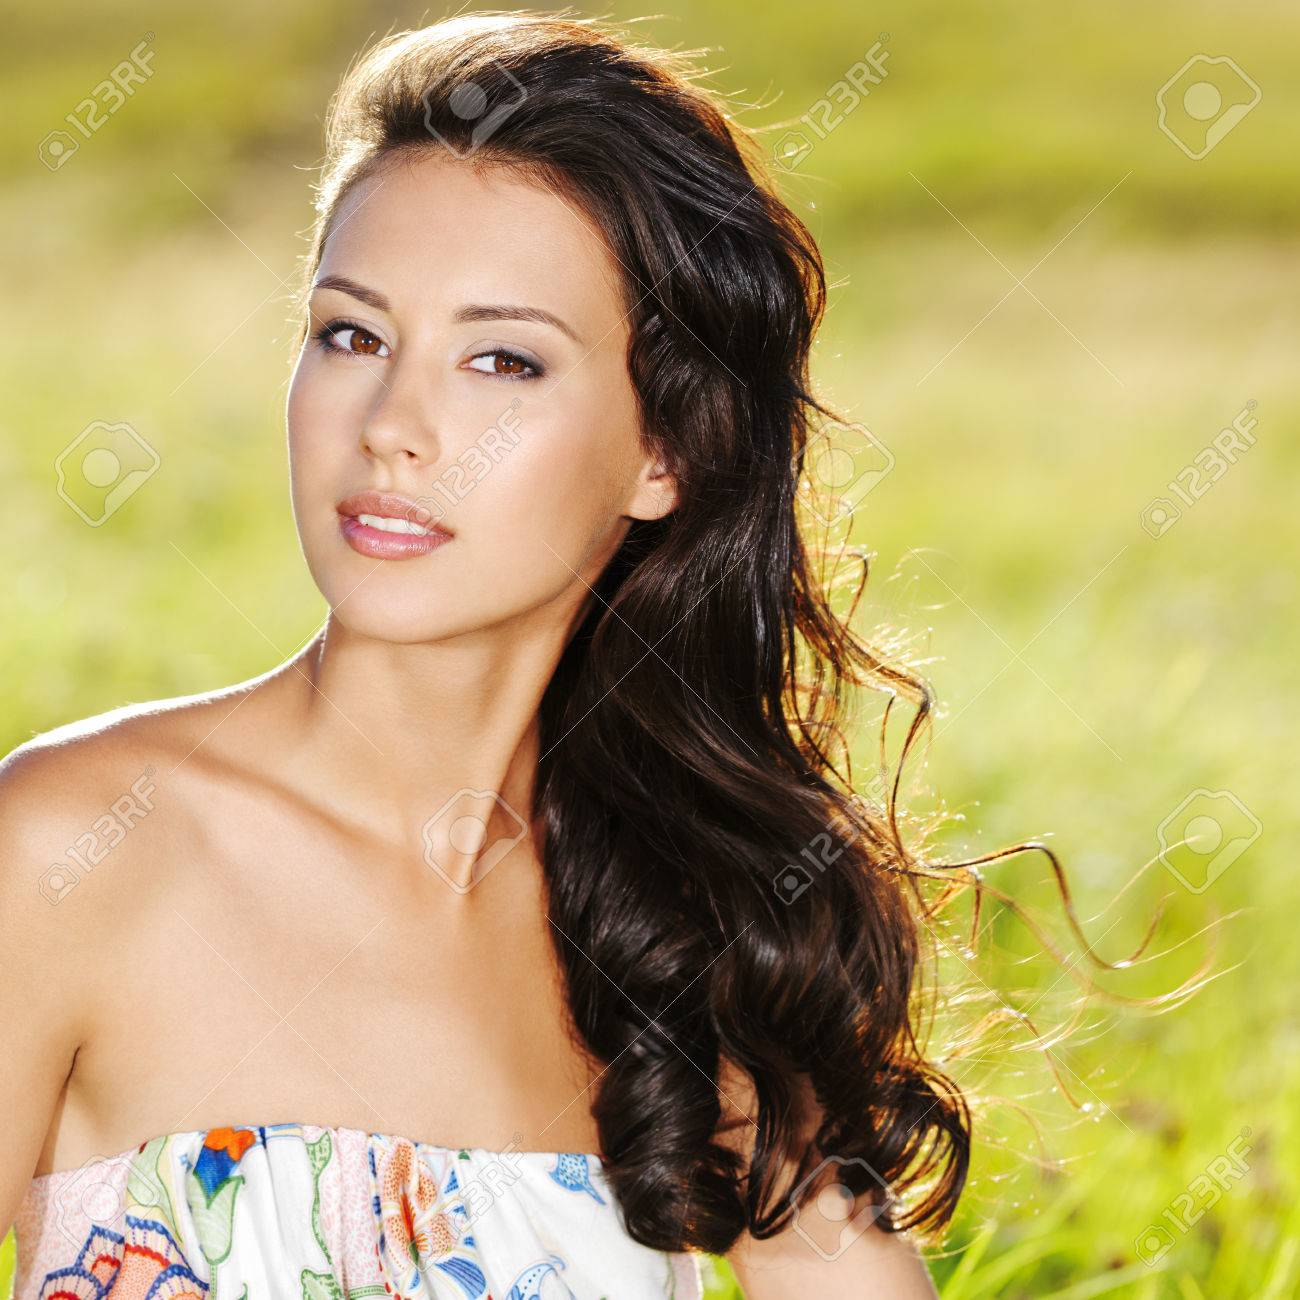 Portrait of an young beautiful sexy woman on the nature Stock Photo - 53558588